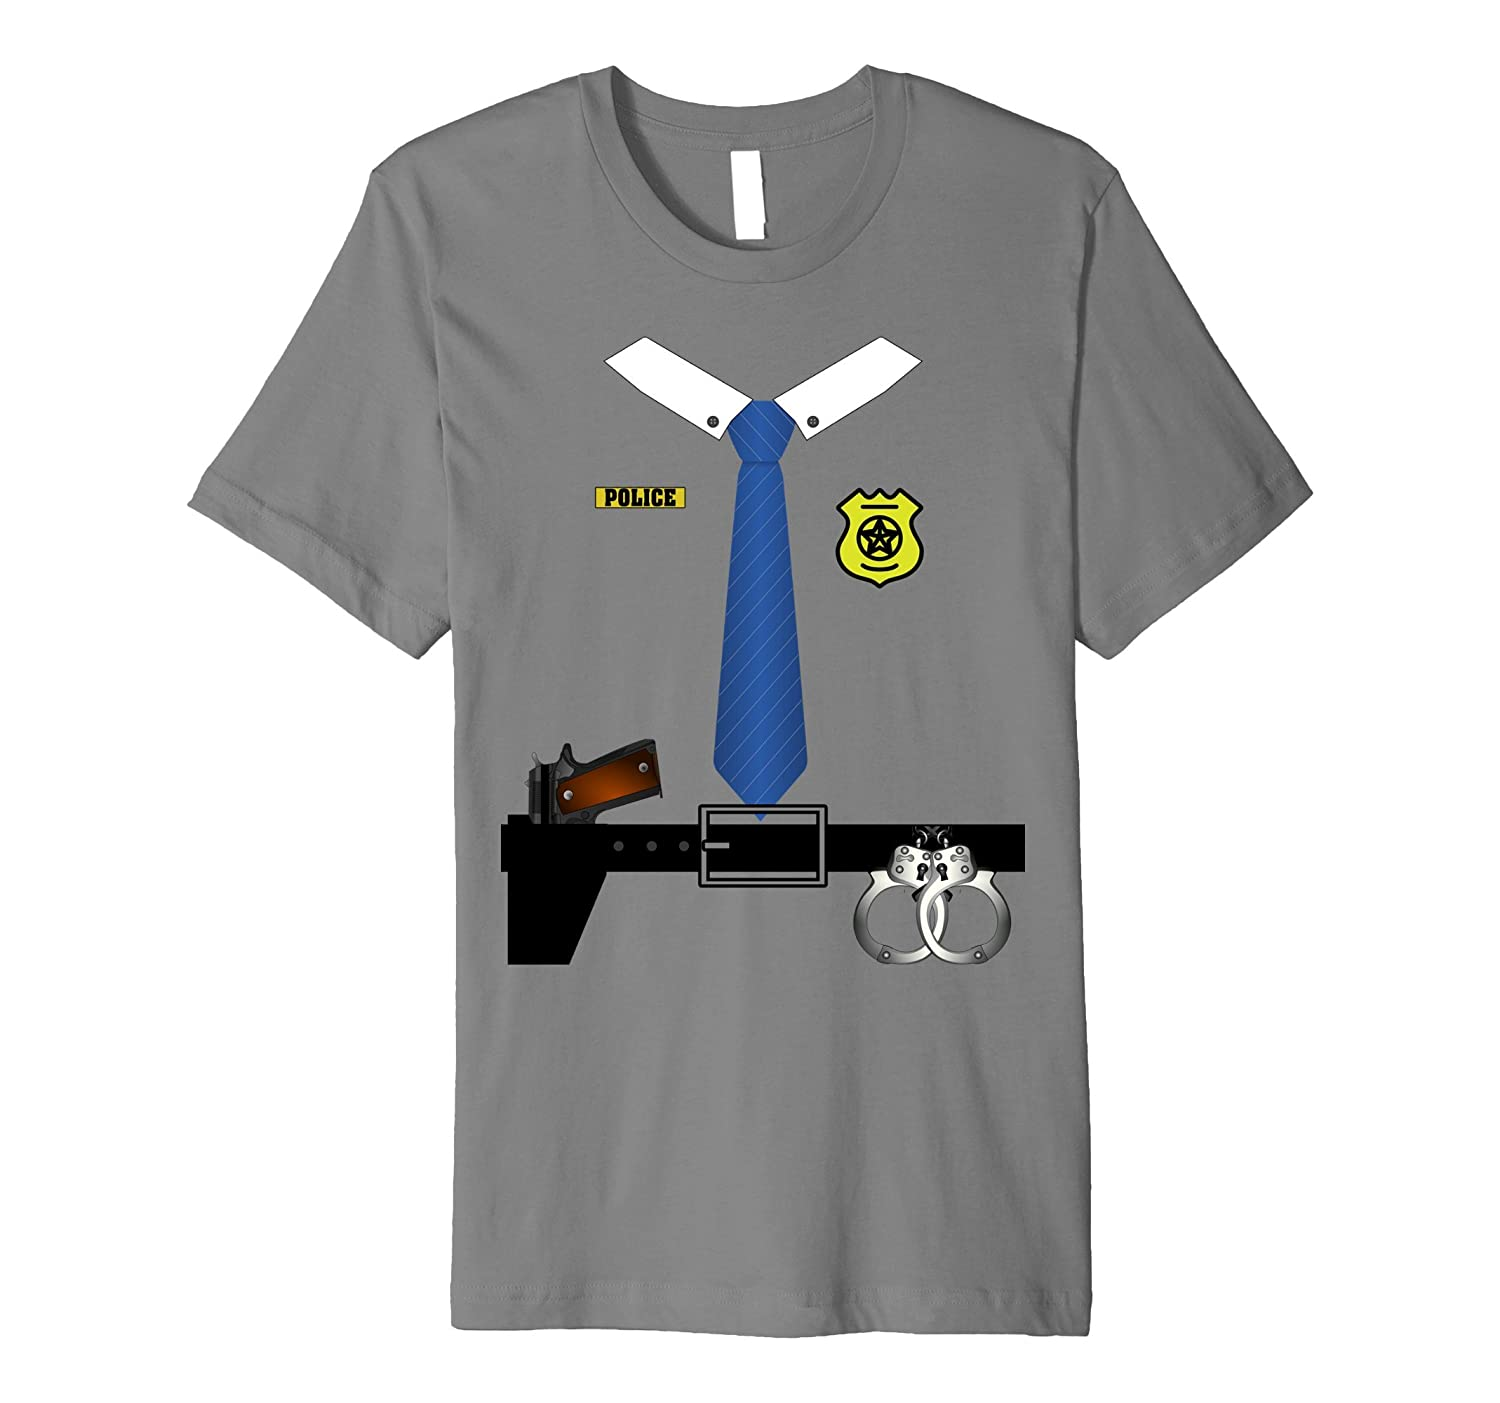 Police Halloween Costume Shirt - Sheriff Cop Men Women Youth